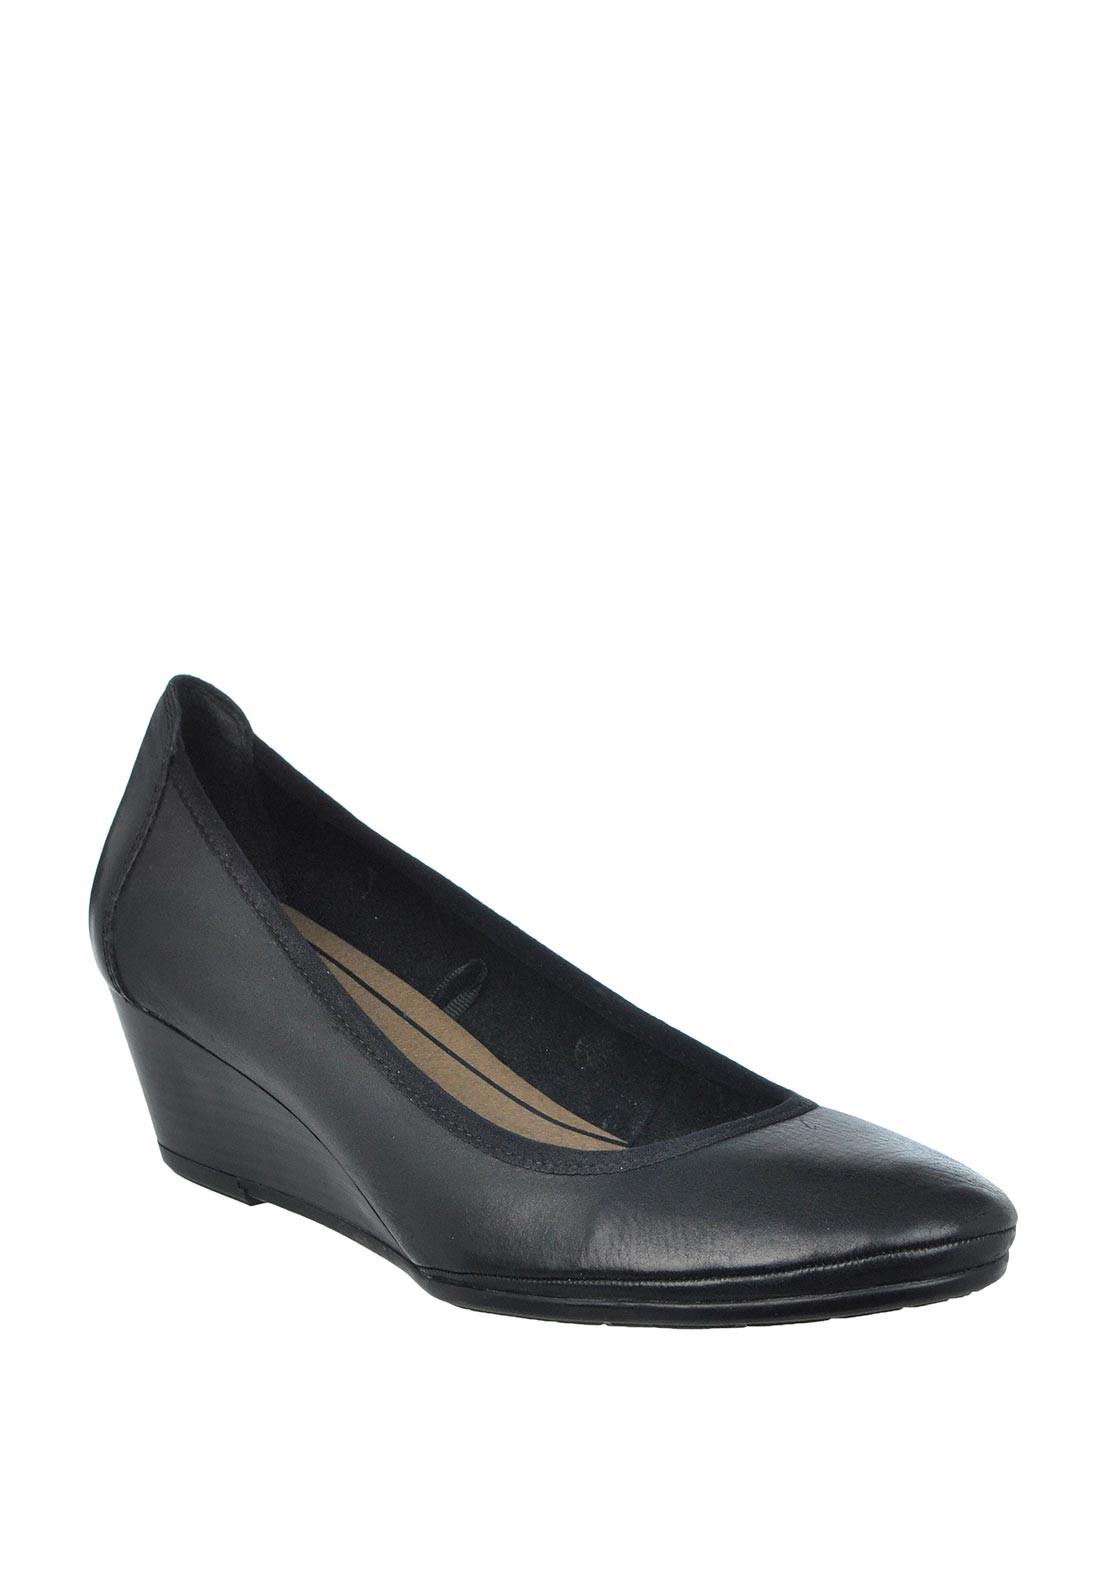 Marco Tozzi Leather Wedged Shoes, Black